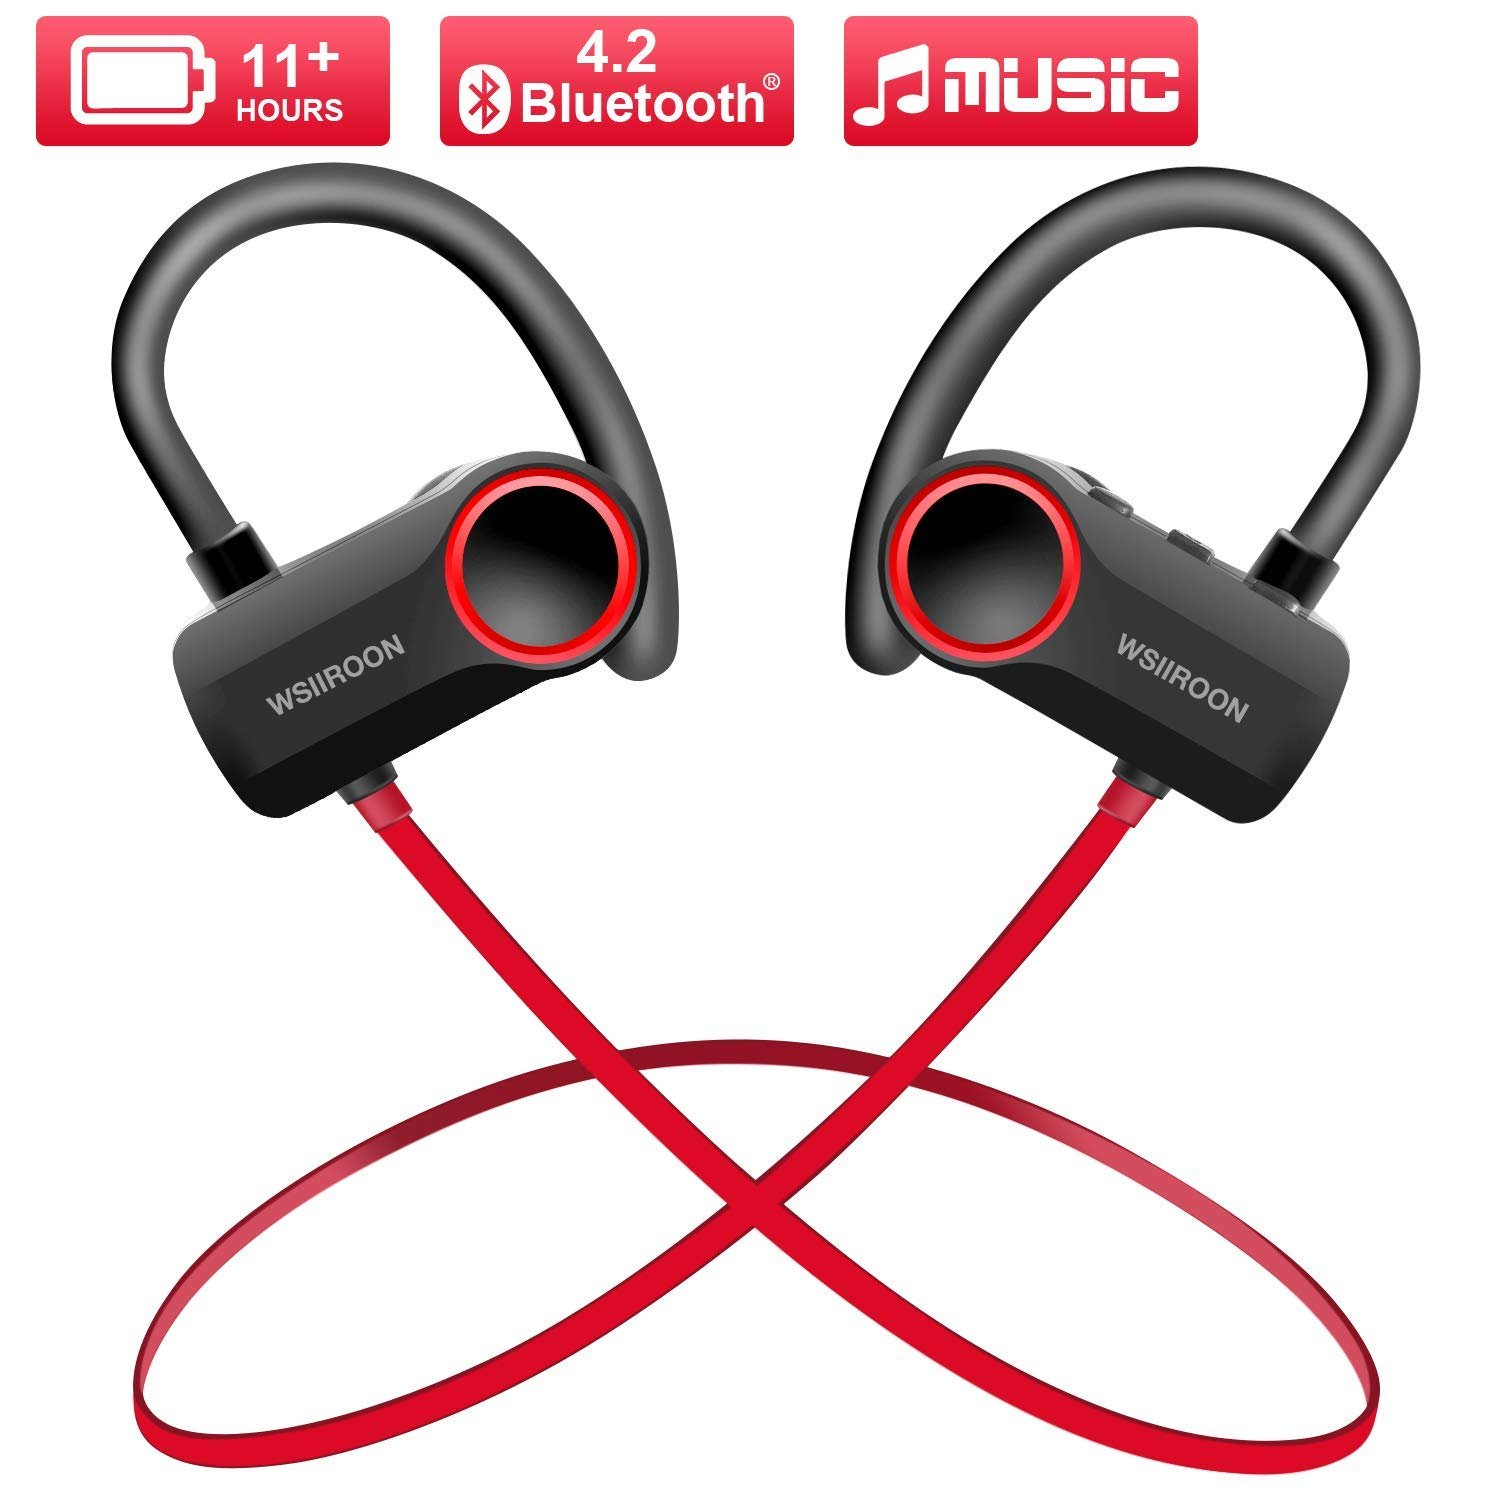 Wsiiroon Wireless 4.2 Bluetooth Headphones, Waterproof IPX7 Sport Headsets in Ear Earbuds, HD Stereo Headphones Over 11 Hrs Battery Noise Cancelling for Outdoor Exercise (Comfy & Fast Pairing) by Wsiiroon